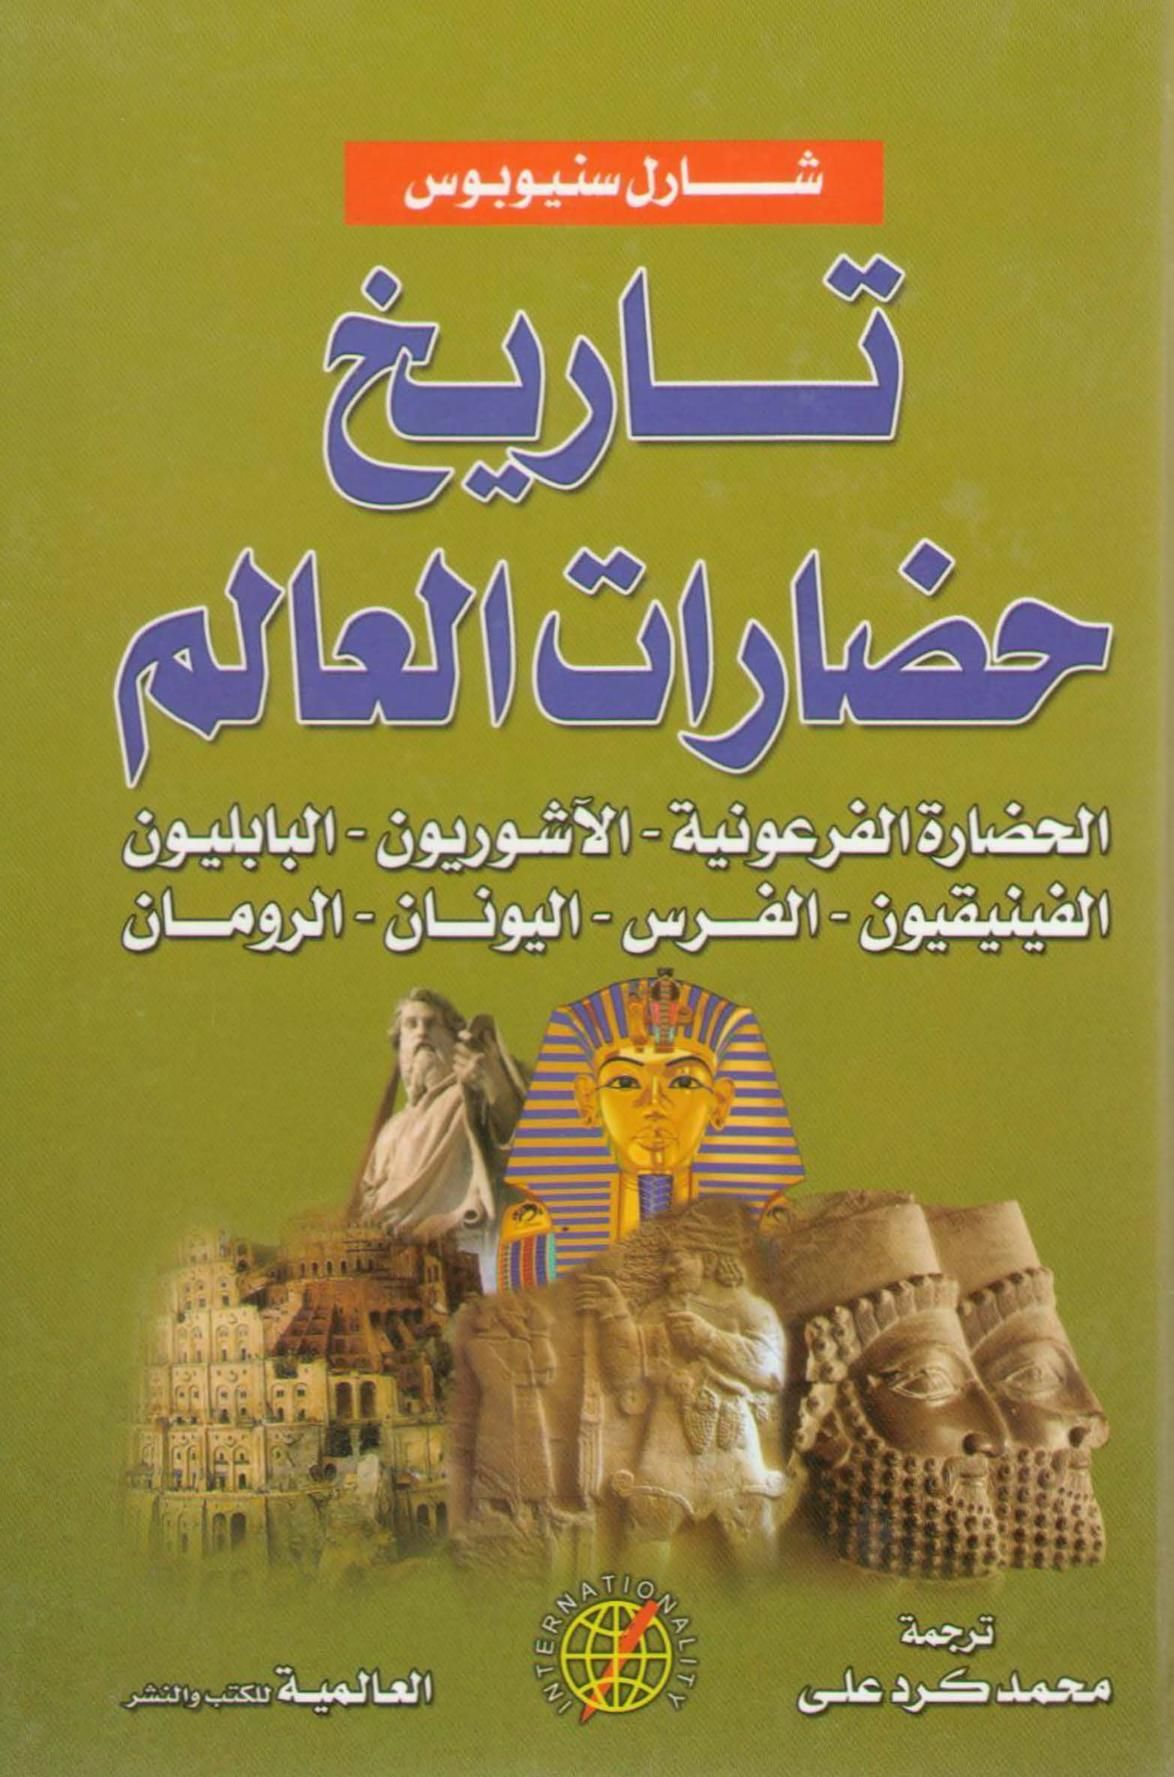 Pin By Abdellah Maliki On Bons Livres My Books Internet Archive Books